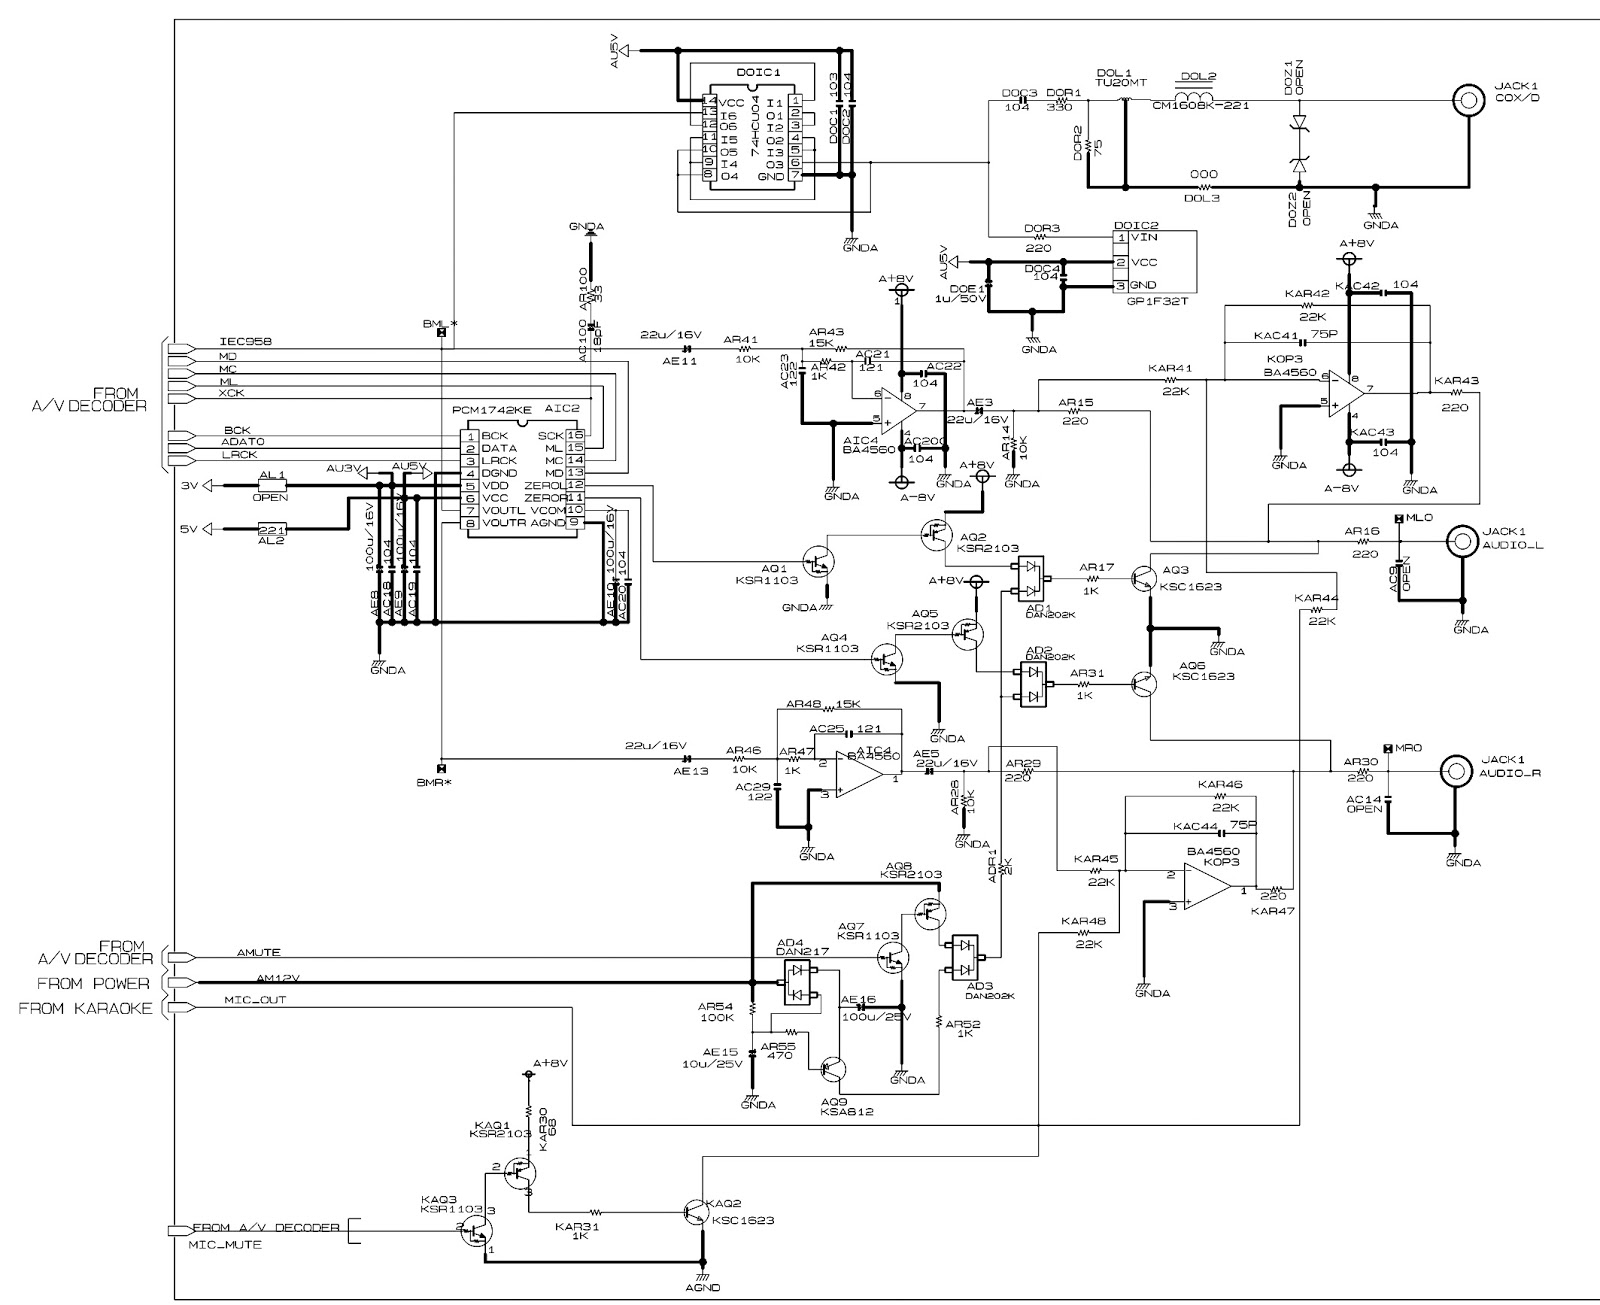 Excellent Atx 450w Smps Circuit Diagram Photos - Electrical and ...